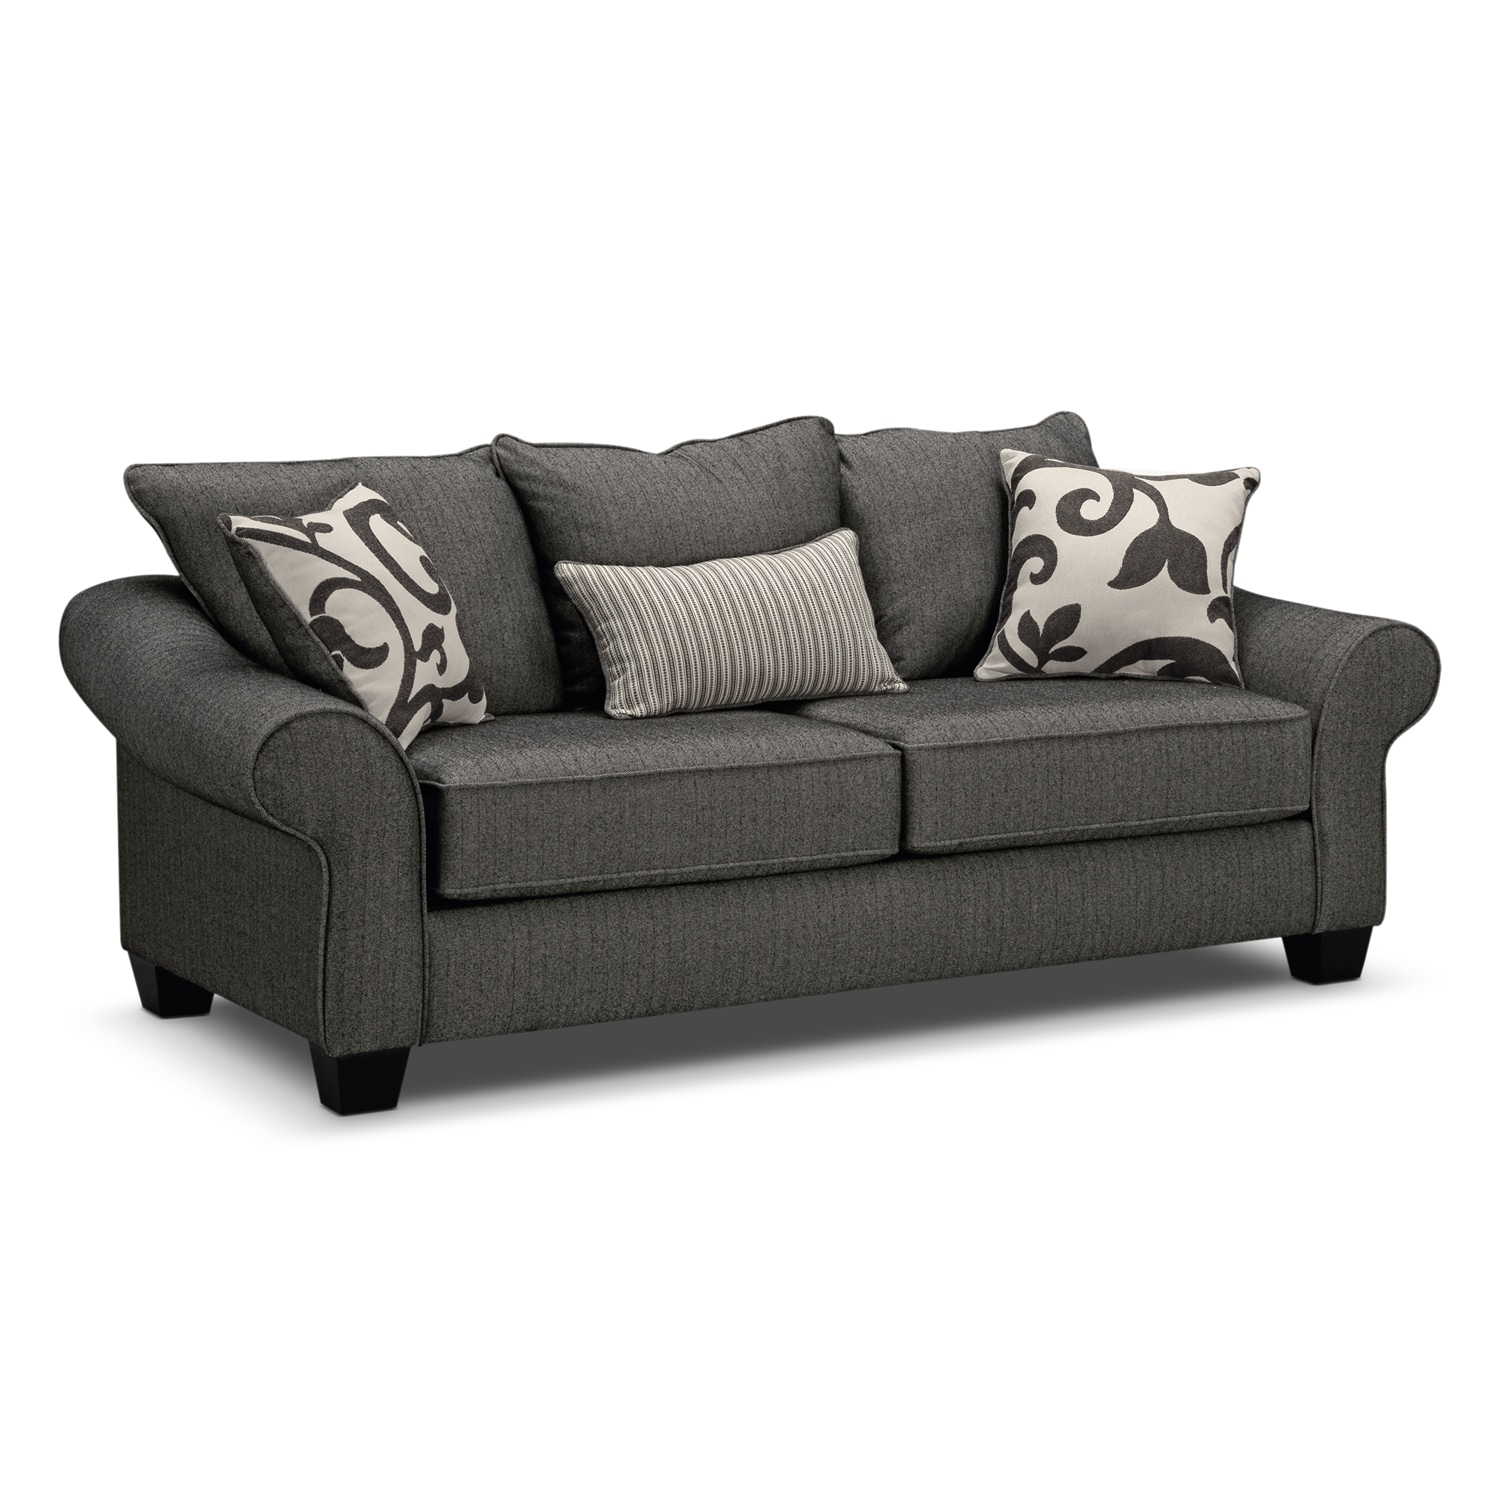 Sofas Couches Living Room Seating American Signature Furniture ~ Payton Power Reclining Sofa